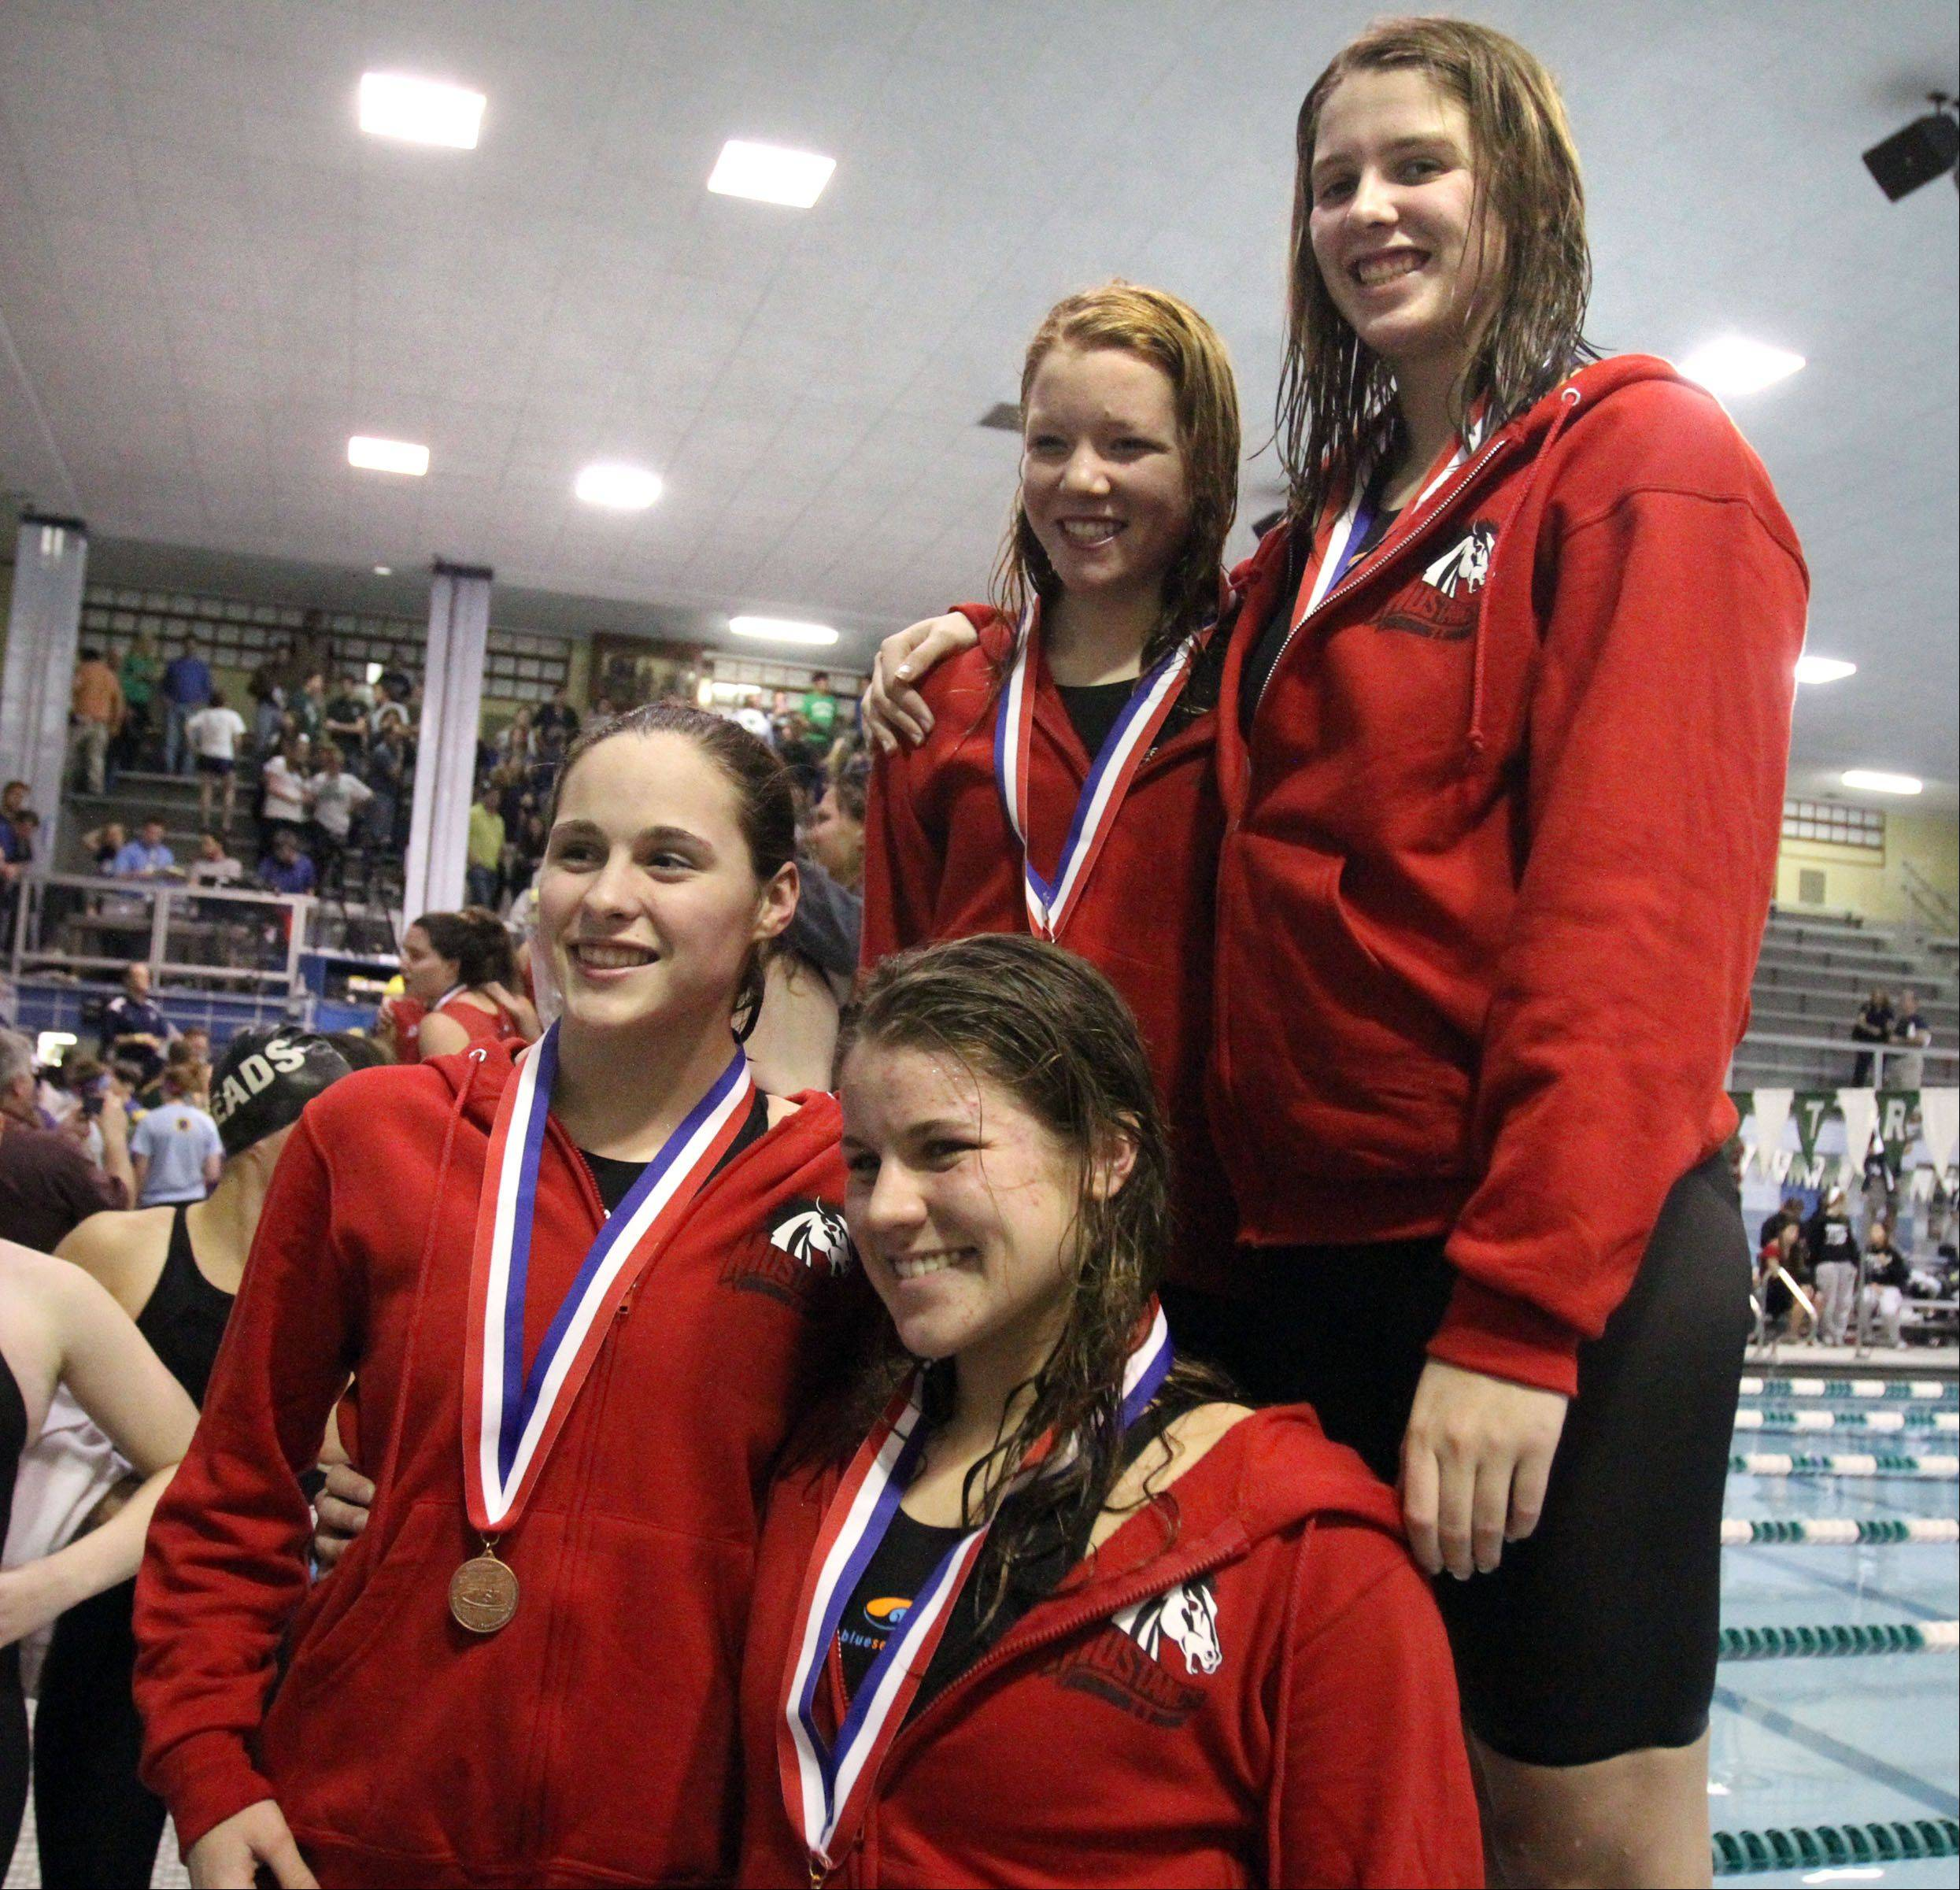 Mundelein�s Karrie Kozokar, right, will swim the 100-yard freestyle in the state series.She�s pictured here at state last year with, from left, Amy Klink, Jennifer Kordik and Erin Falconer after they placed eighth in the 400 freestyle relay.